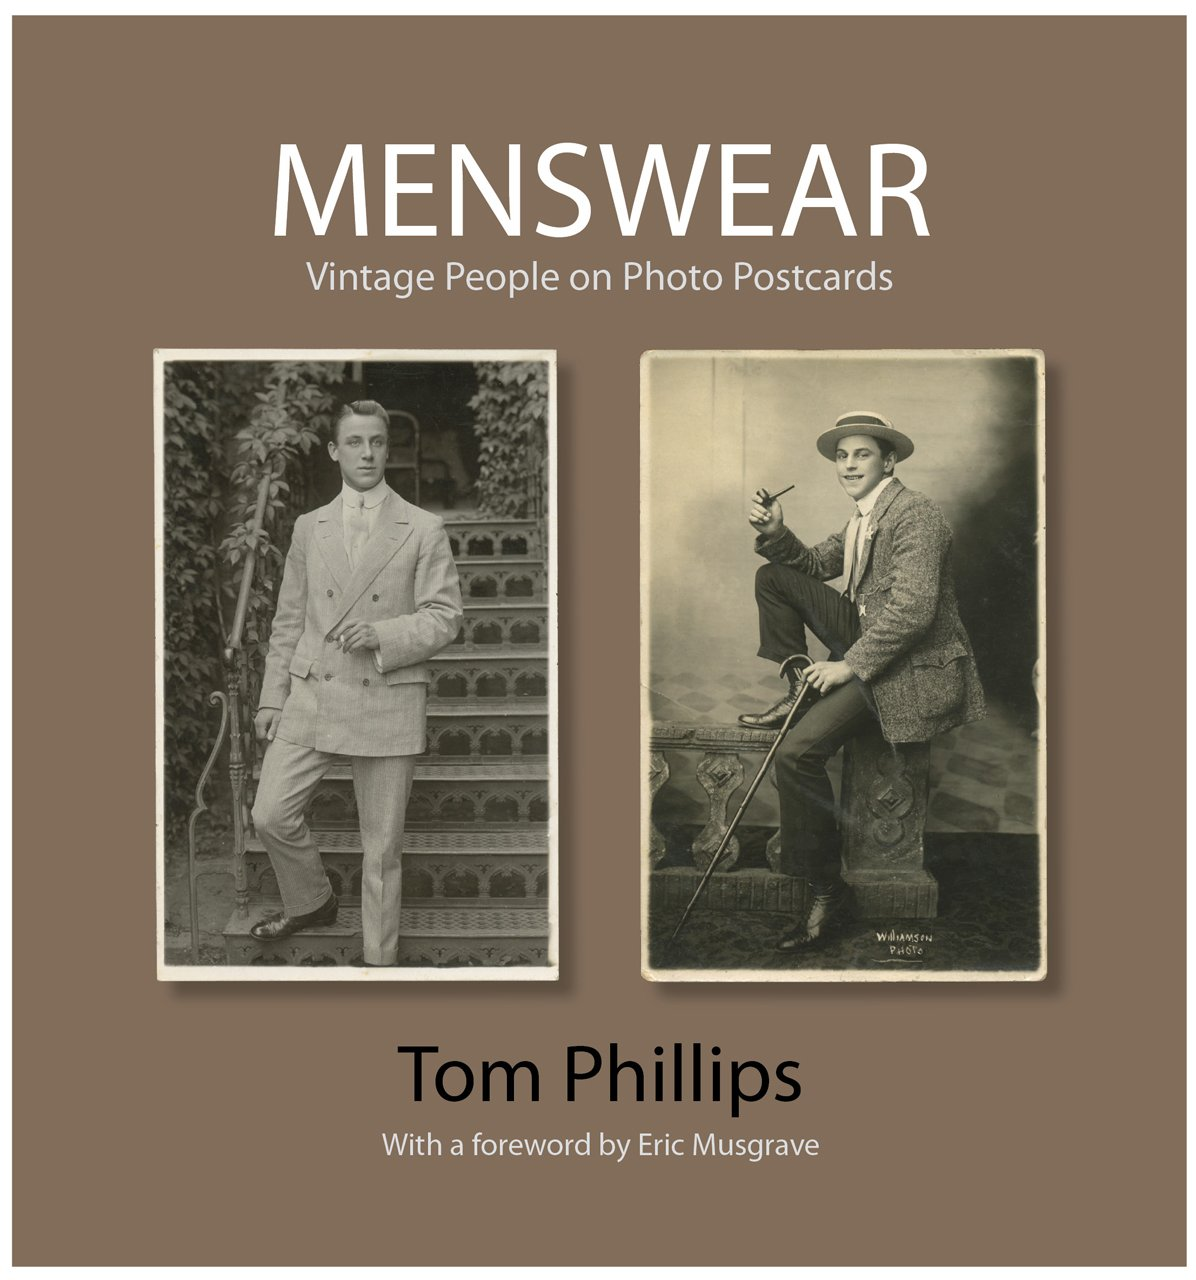 Menswear: Vintage People on Photo Postcards (Photo Postcards from the Tom Phillips Archive) por Tom Phillips